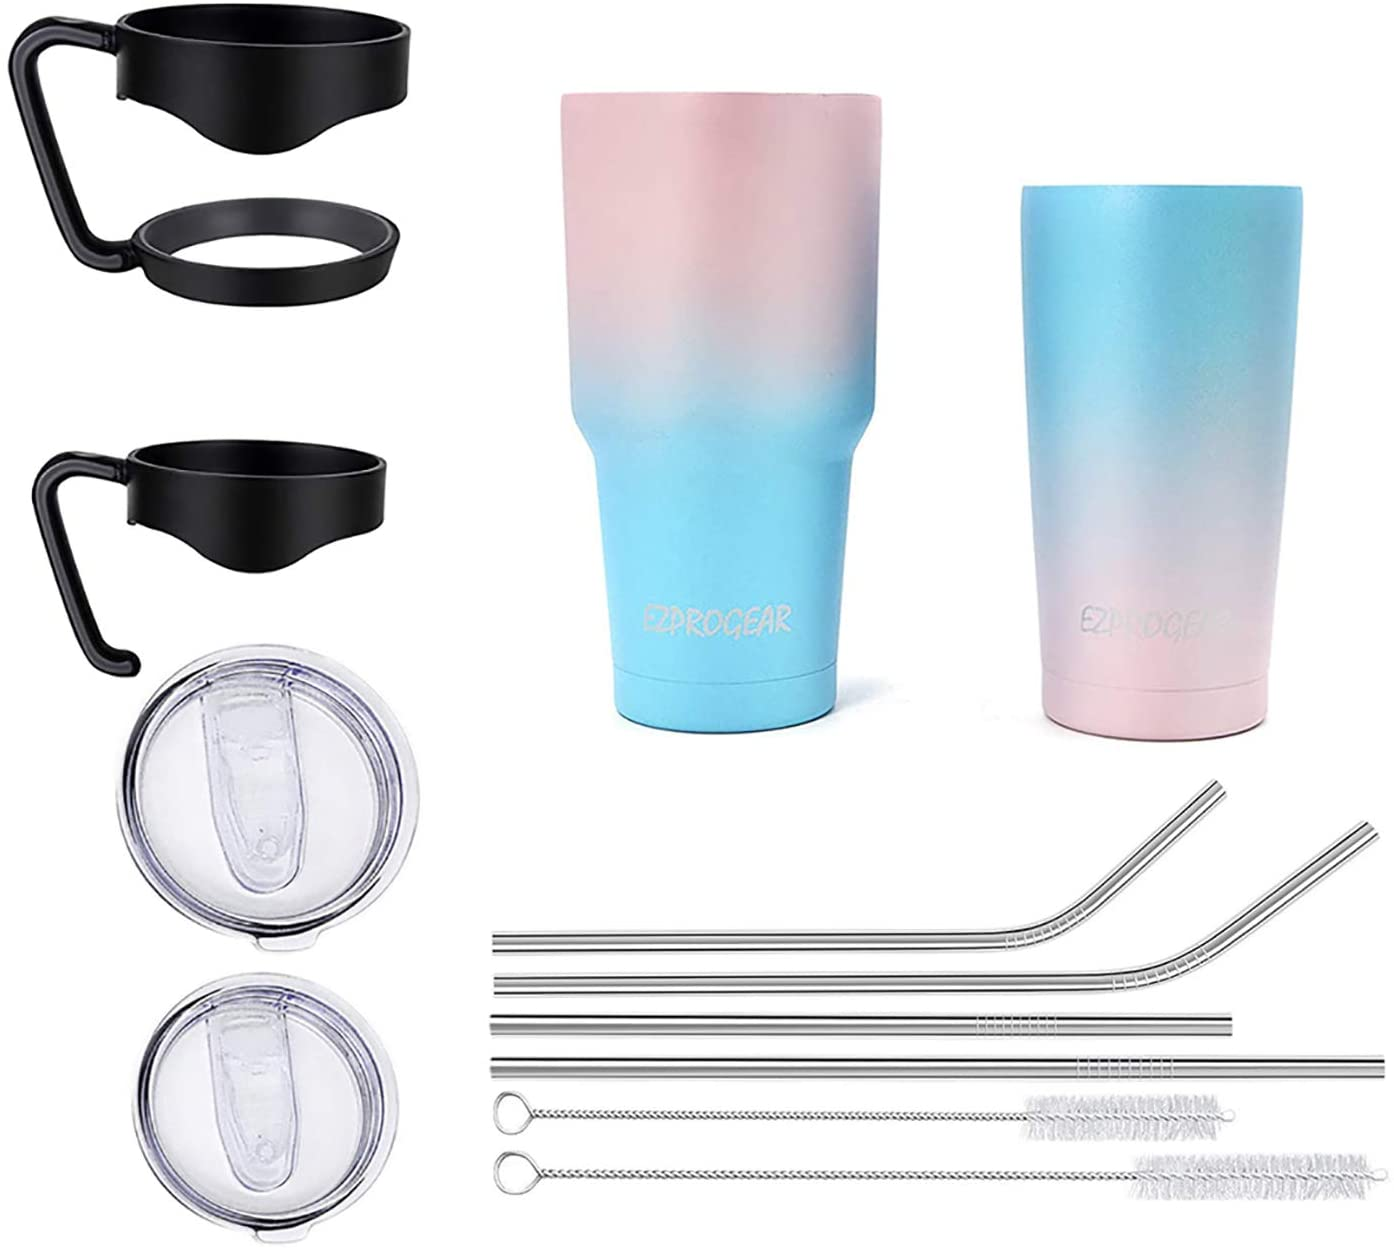 Ezprogear 20 oz 30 oz Stainless Steel Vacuum Insulated Double Wall Tumbler with Straws and Handle (20 oz & 30 oz, Pink/Mint)